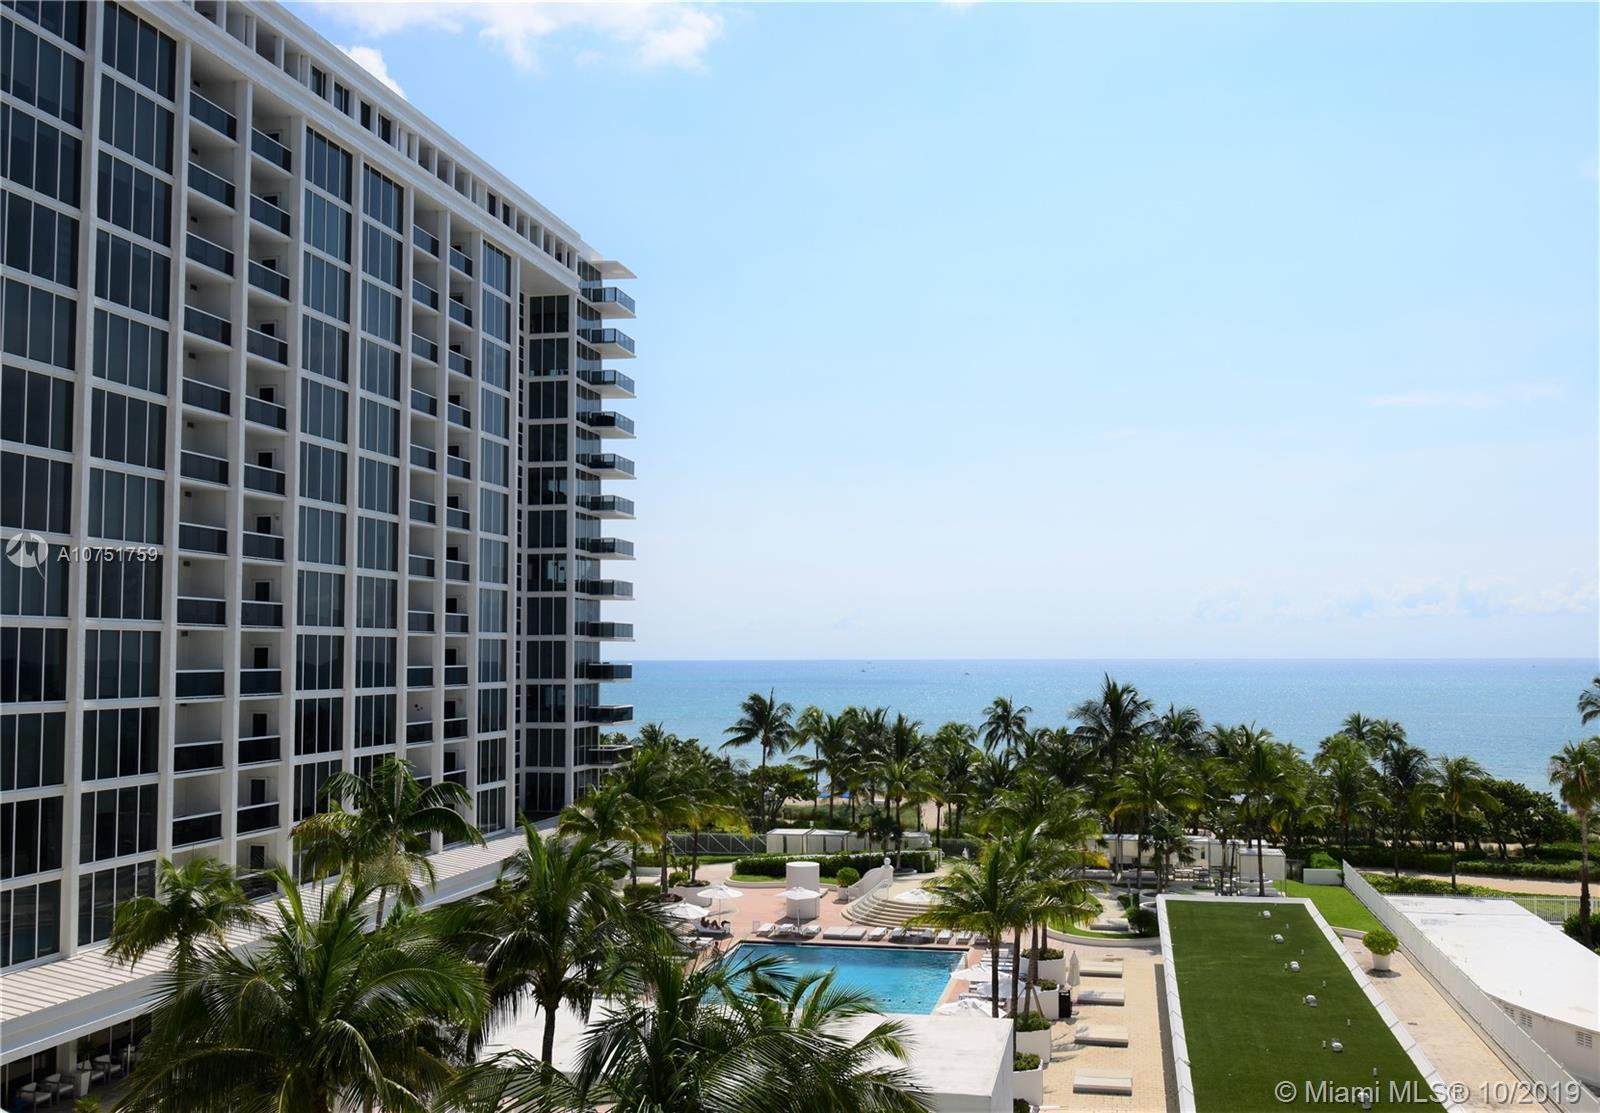 This beautiful and impeccable corner unit has 2 Bed/2 bath with direct ocean and partial city views.